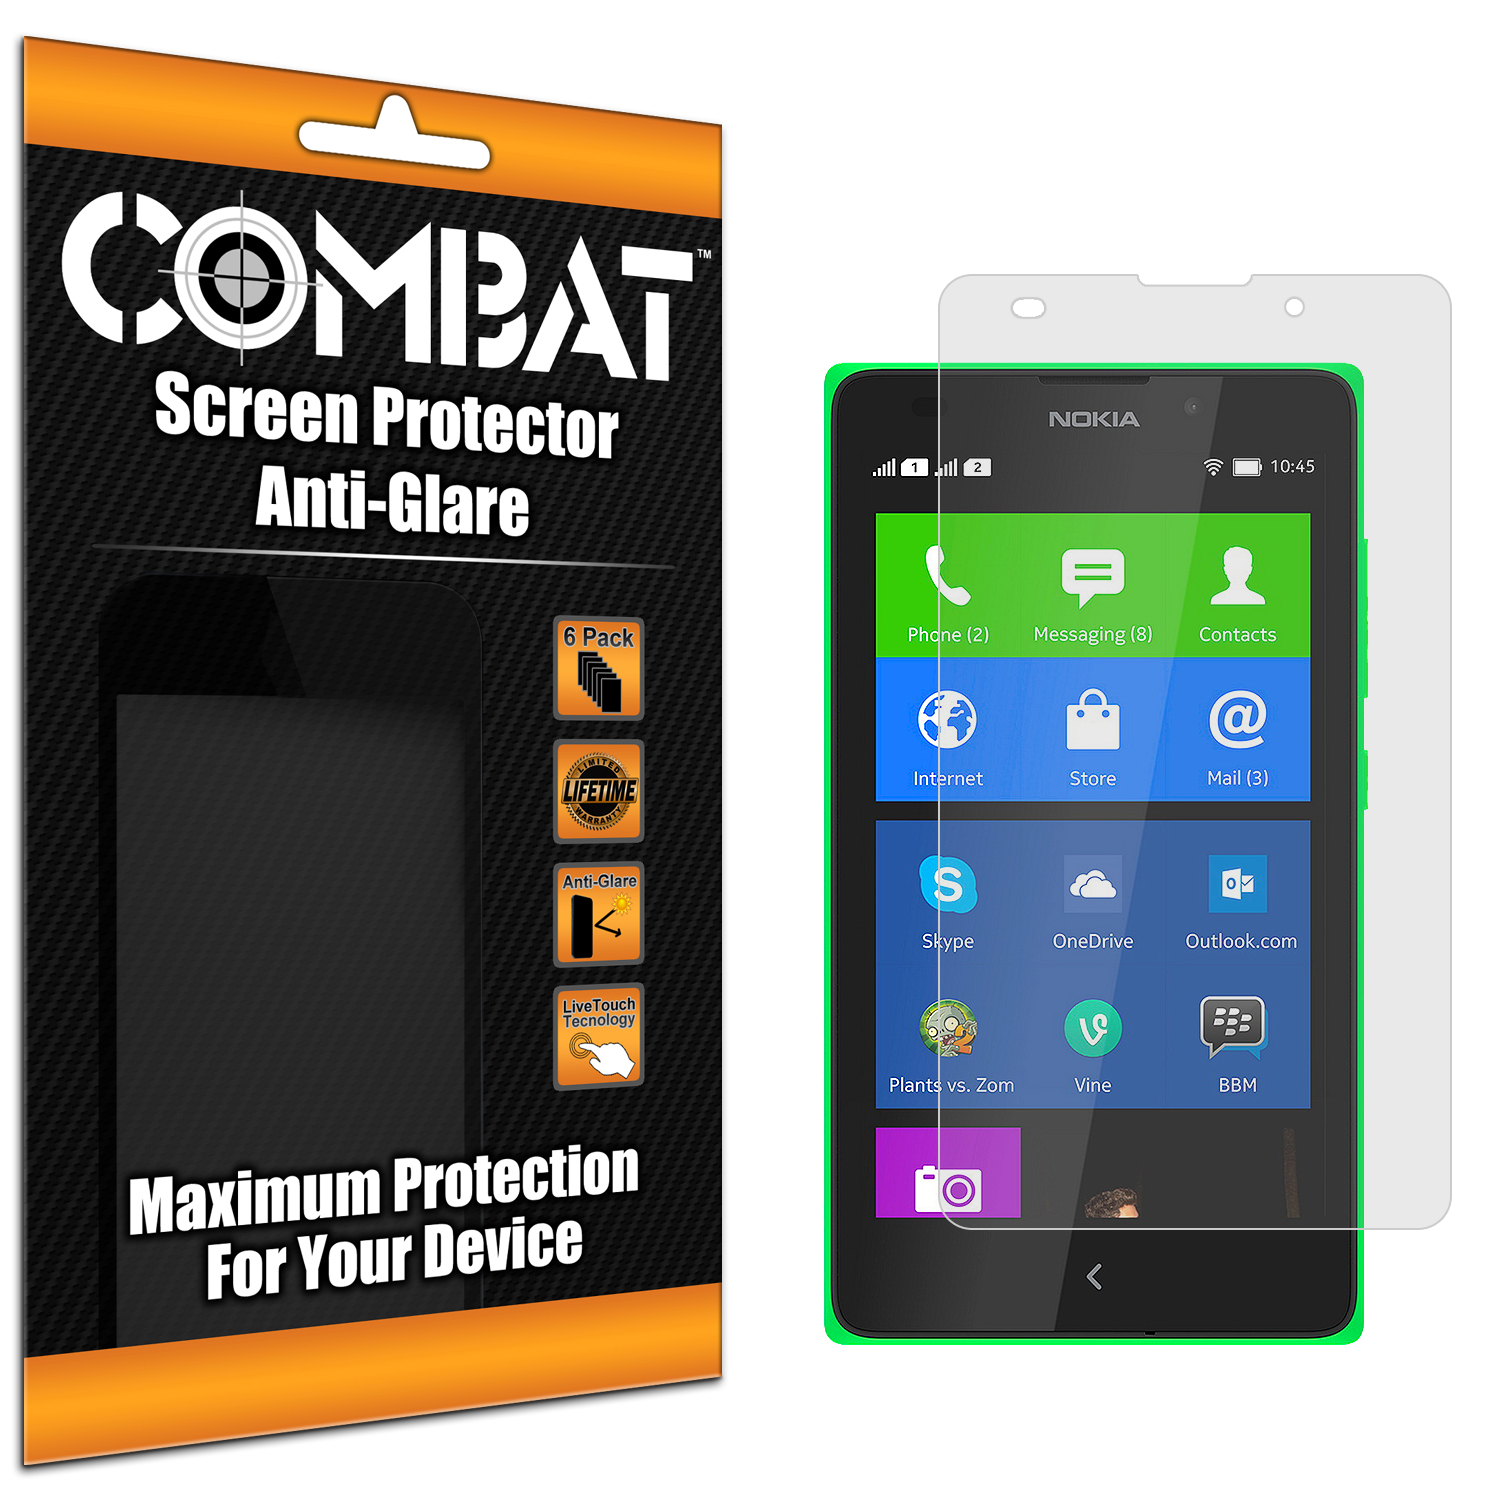 Nokia XL Combat 6 Pack Anti-Glare Matte Screen Protector